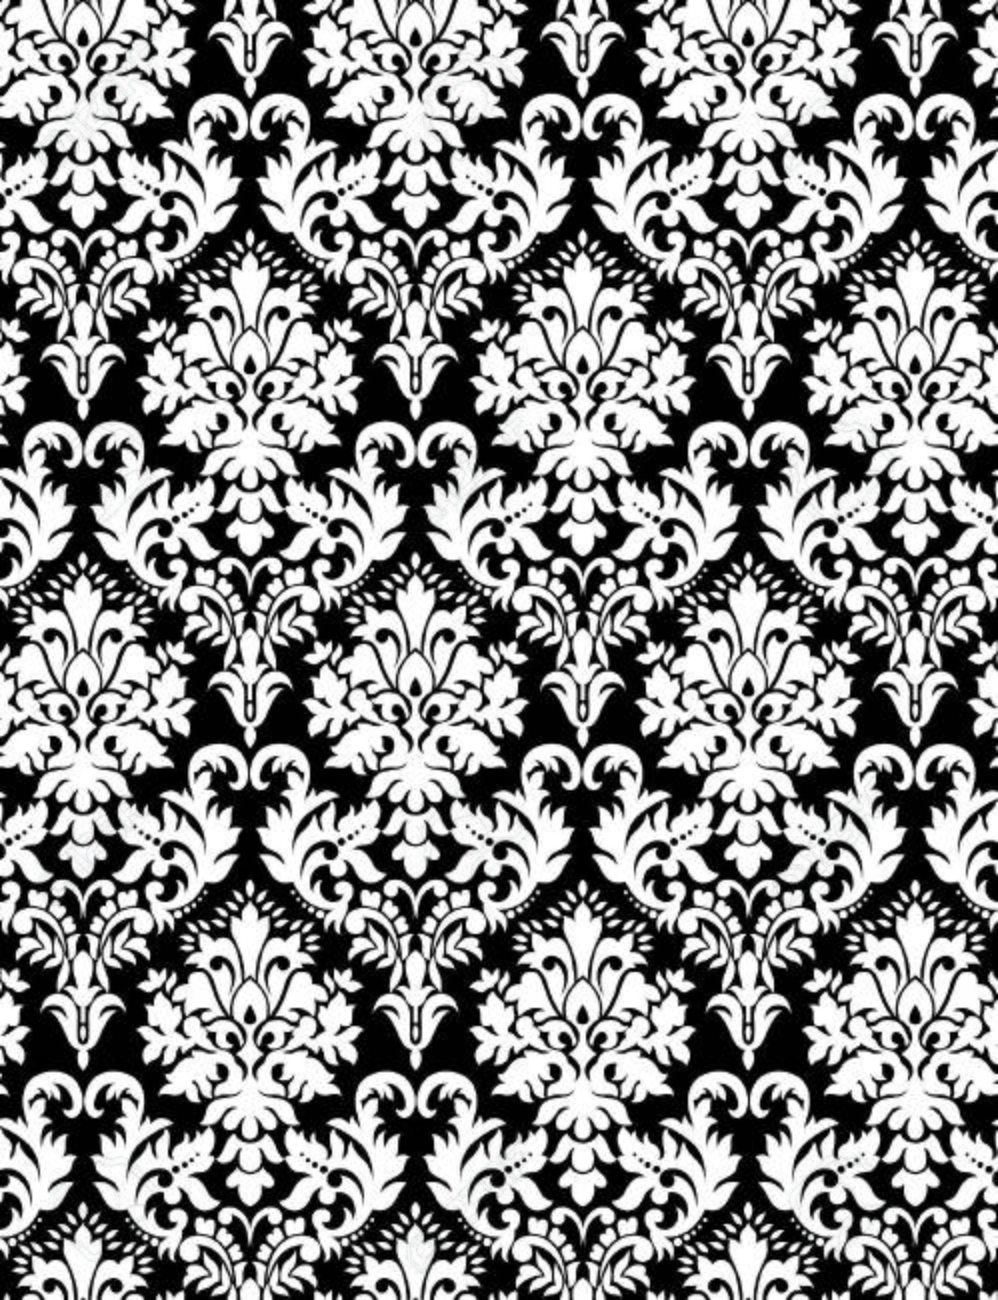 Seamless Paisley Wallpaper In Black Background Stock Vector